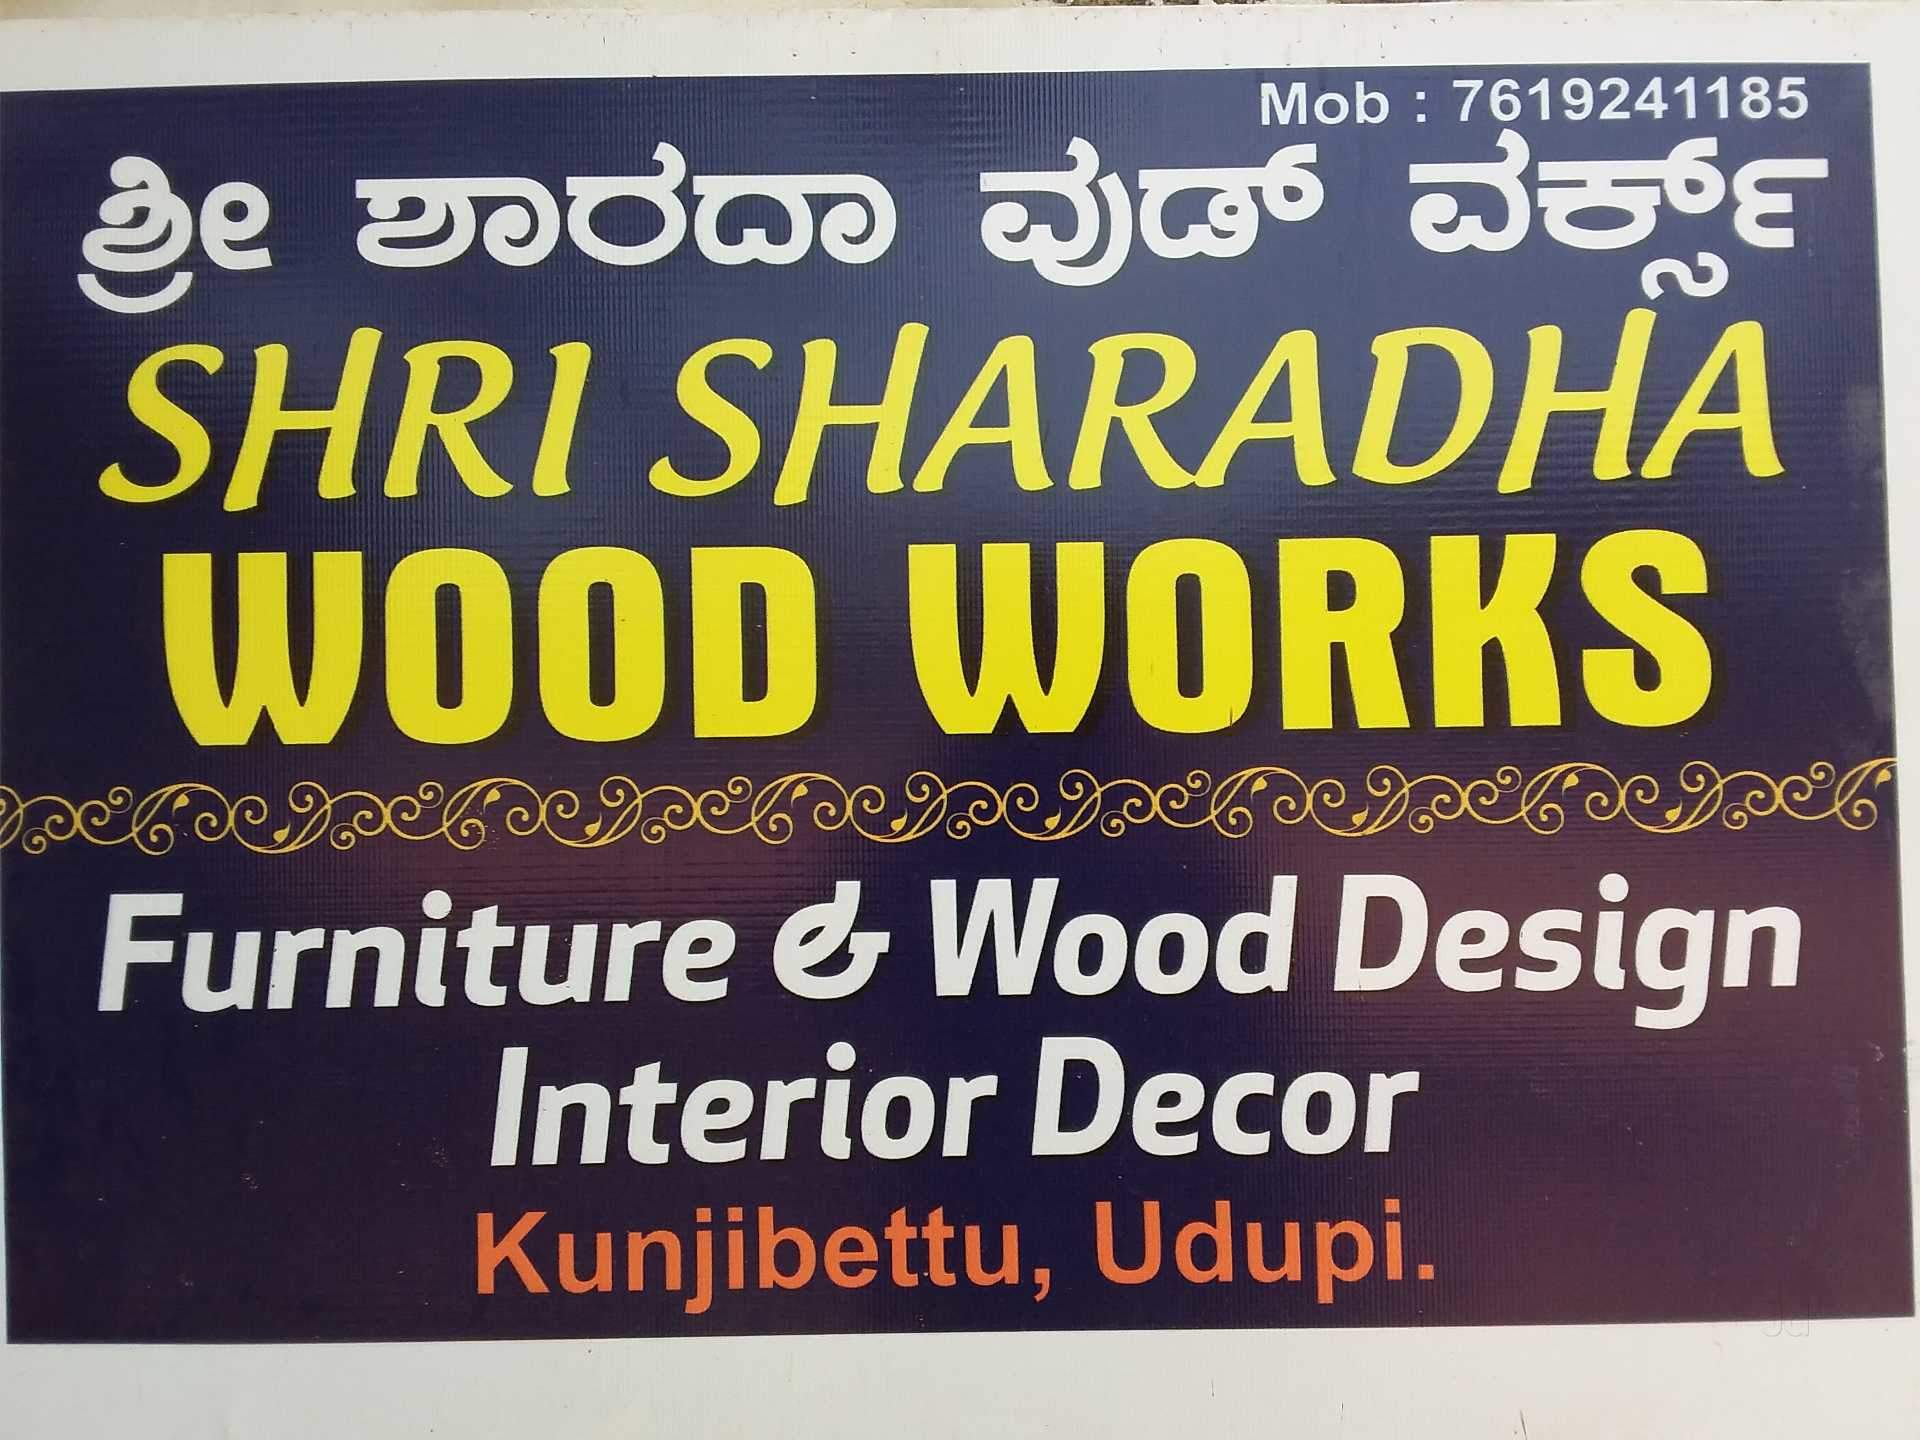 Top 30 Carpenters in Udupi - Carpentry Services - Justdial